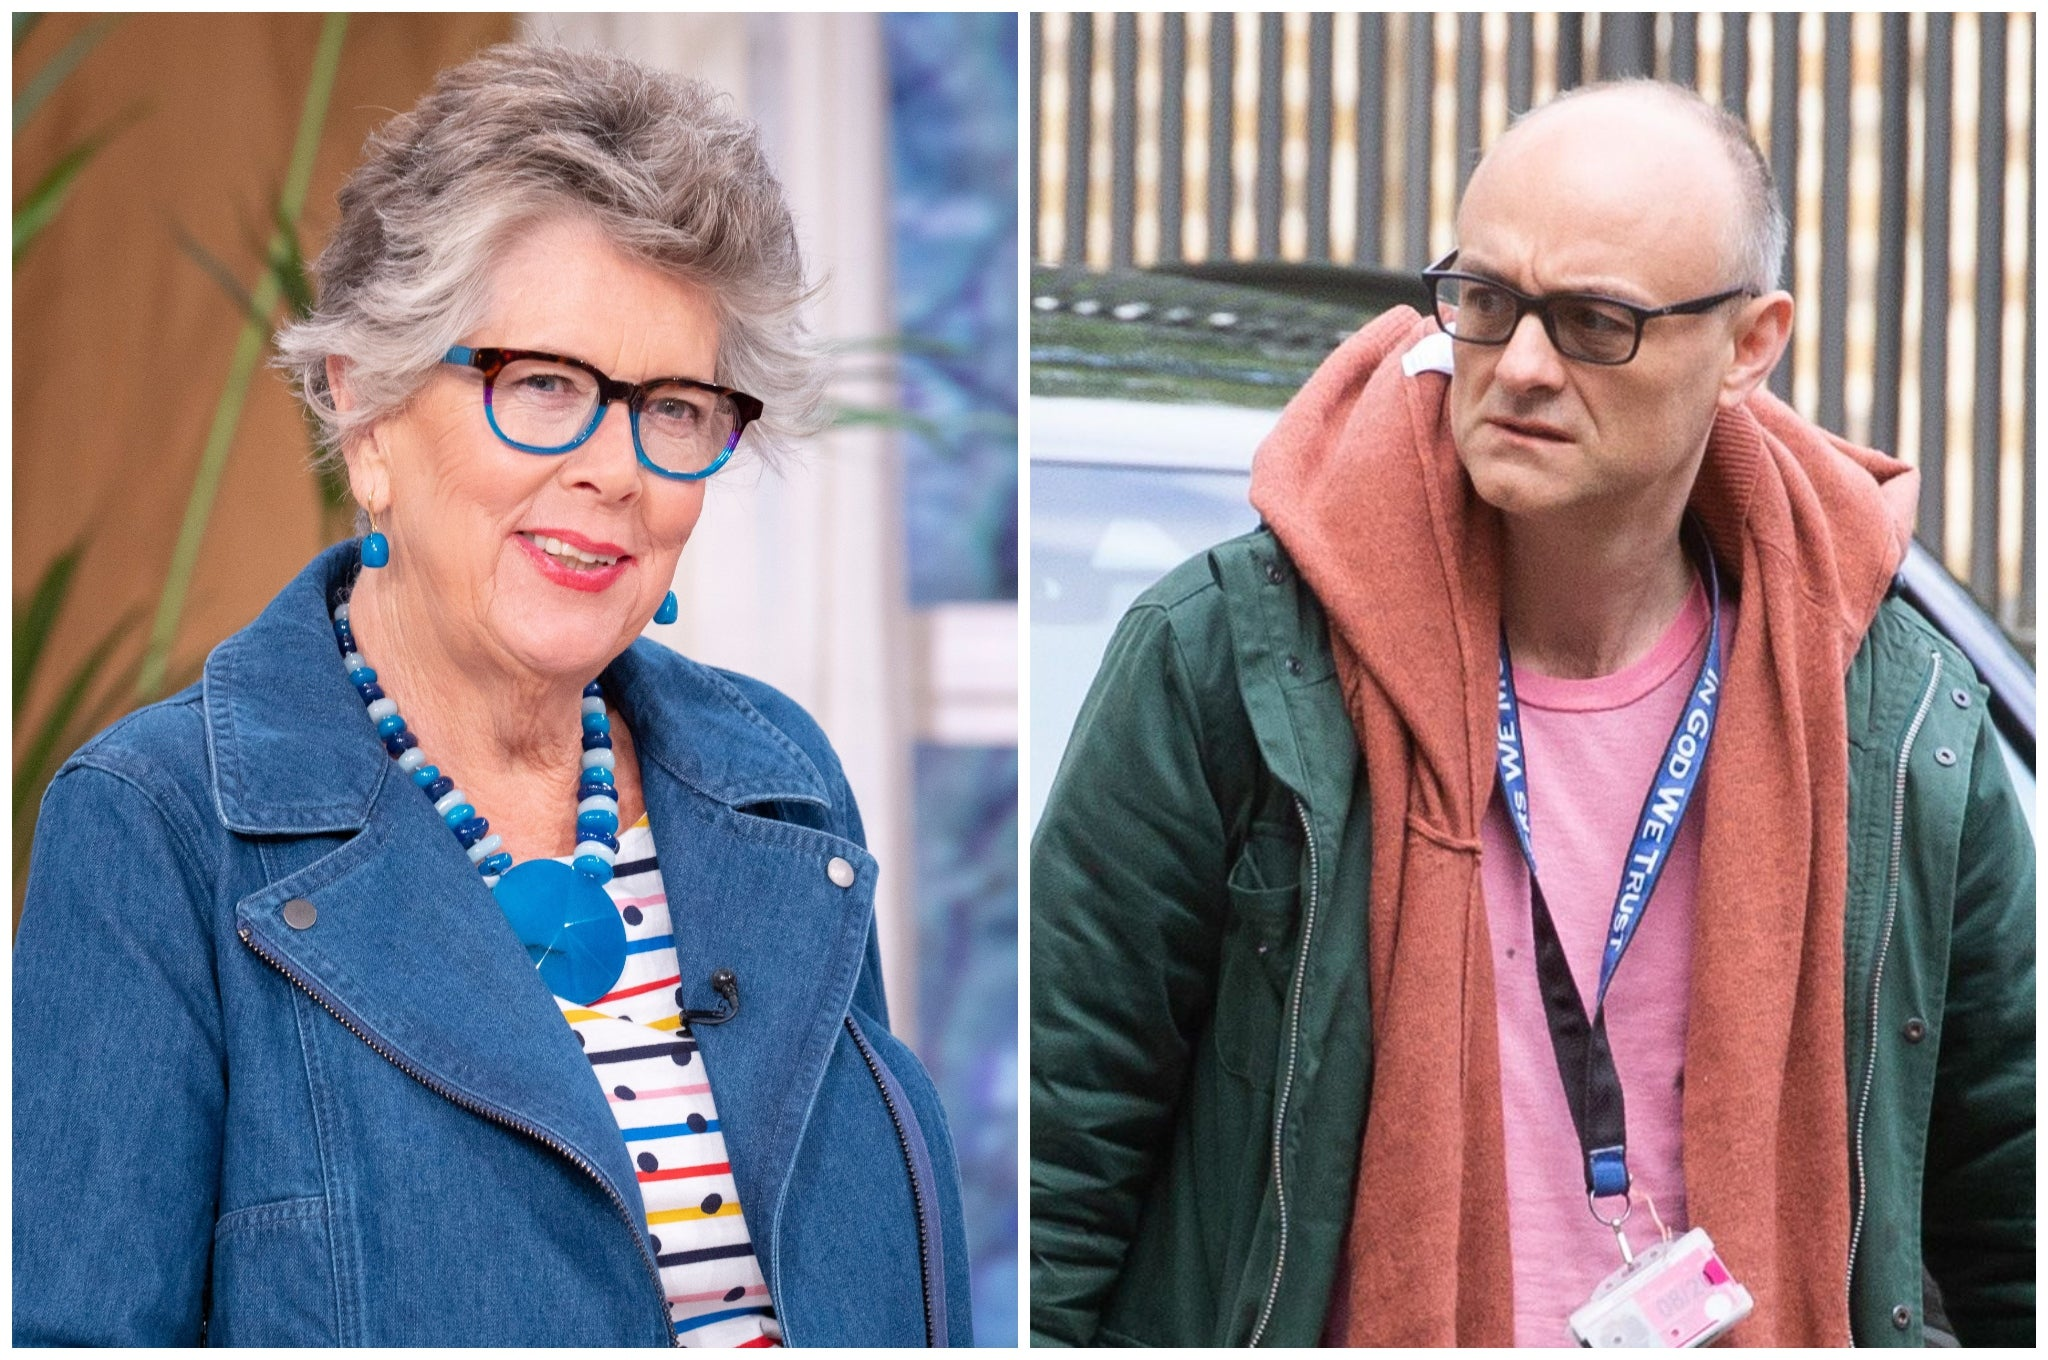 Prue Leith defends Dominic Cummings over lockdown row and calls for 'kindess'